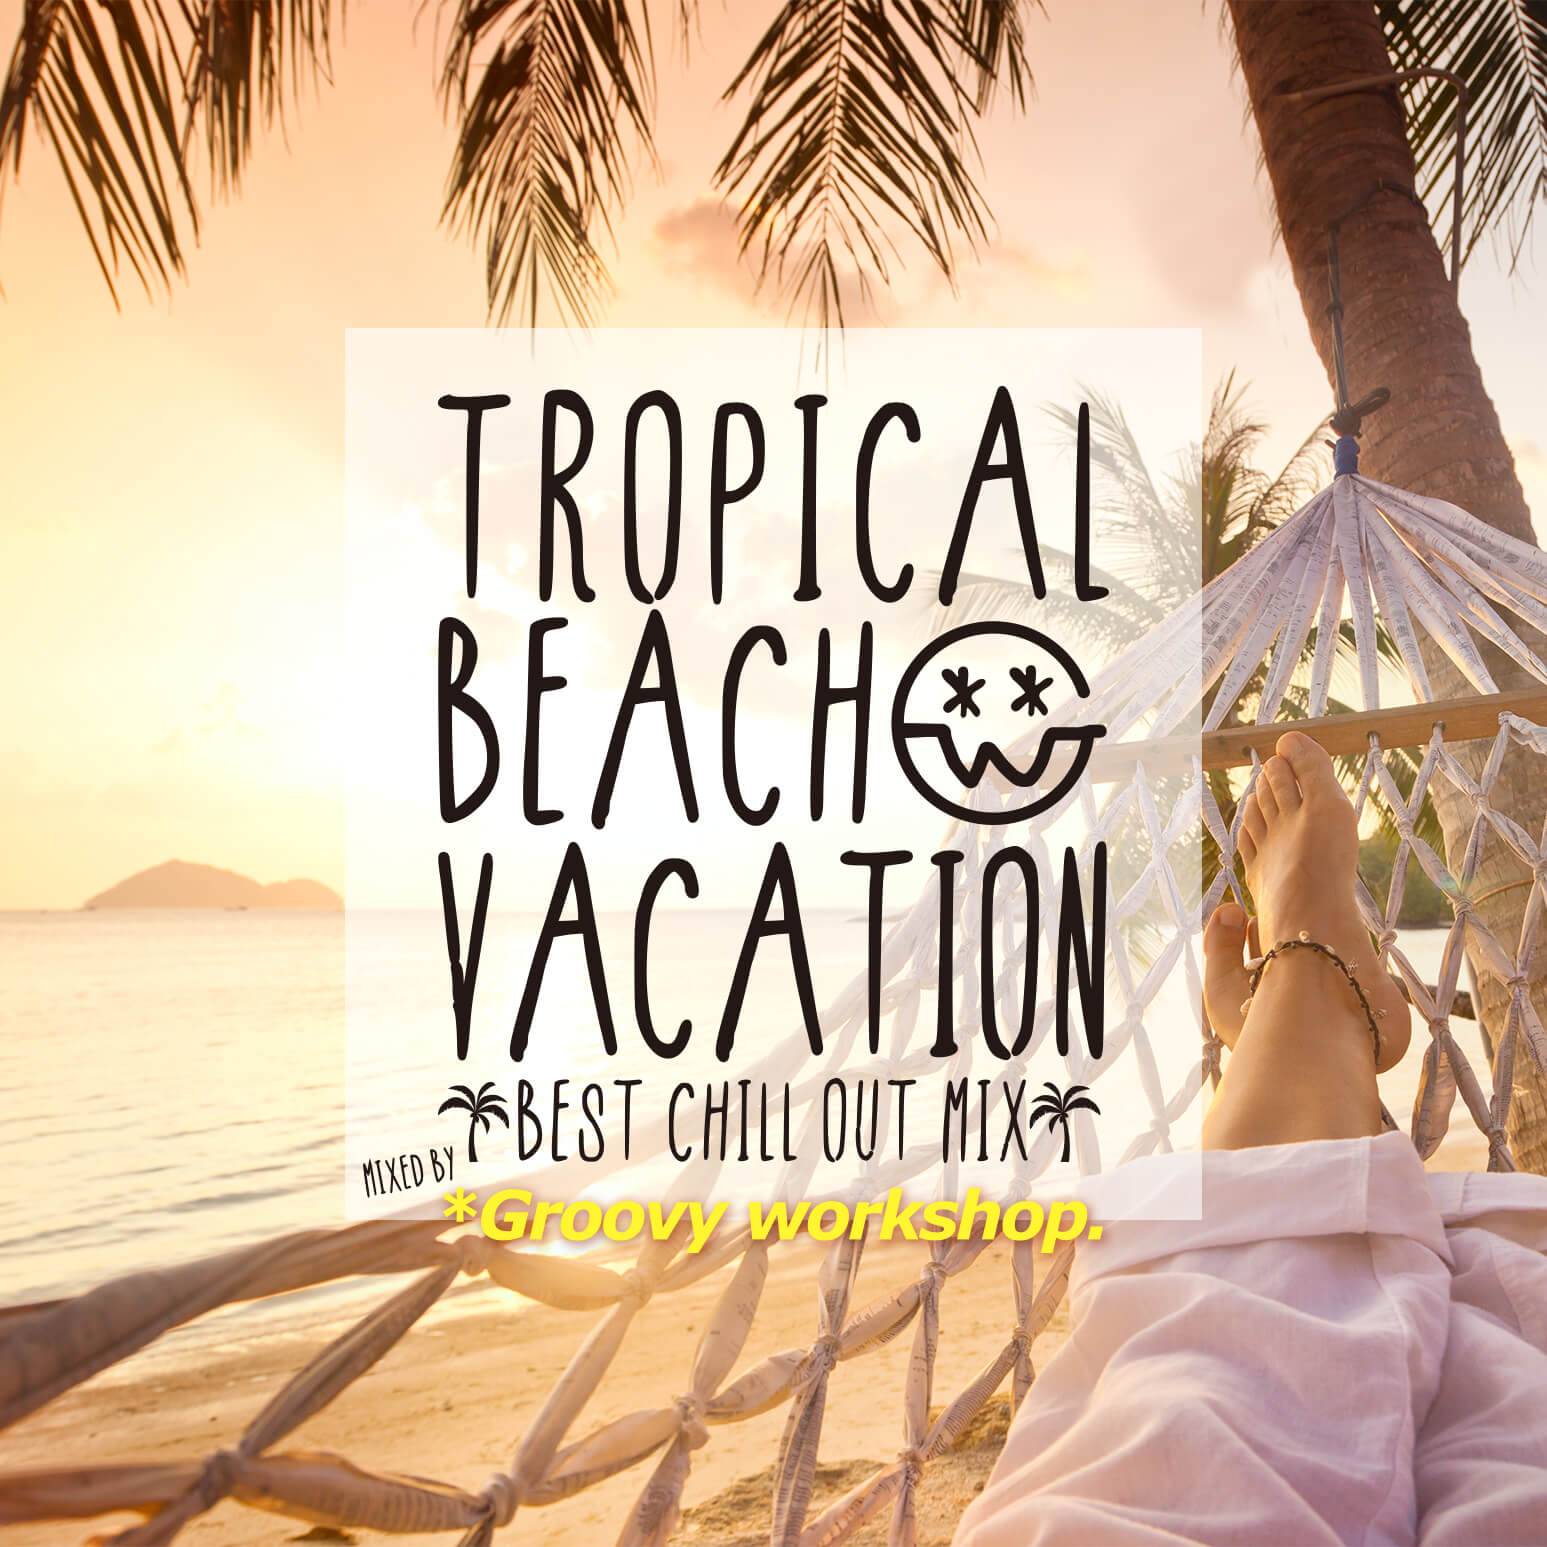 TROPICAL BEACH VACATION-Best Chill Out Mix-mixed by Groovy workshop